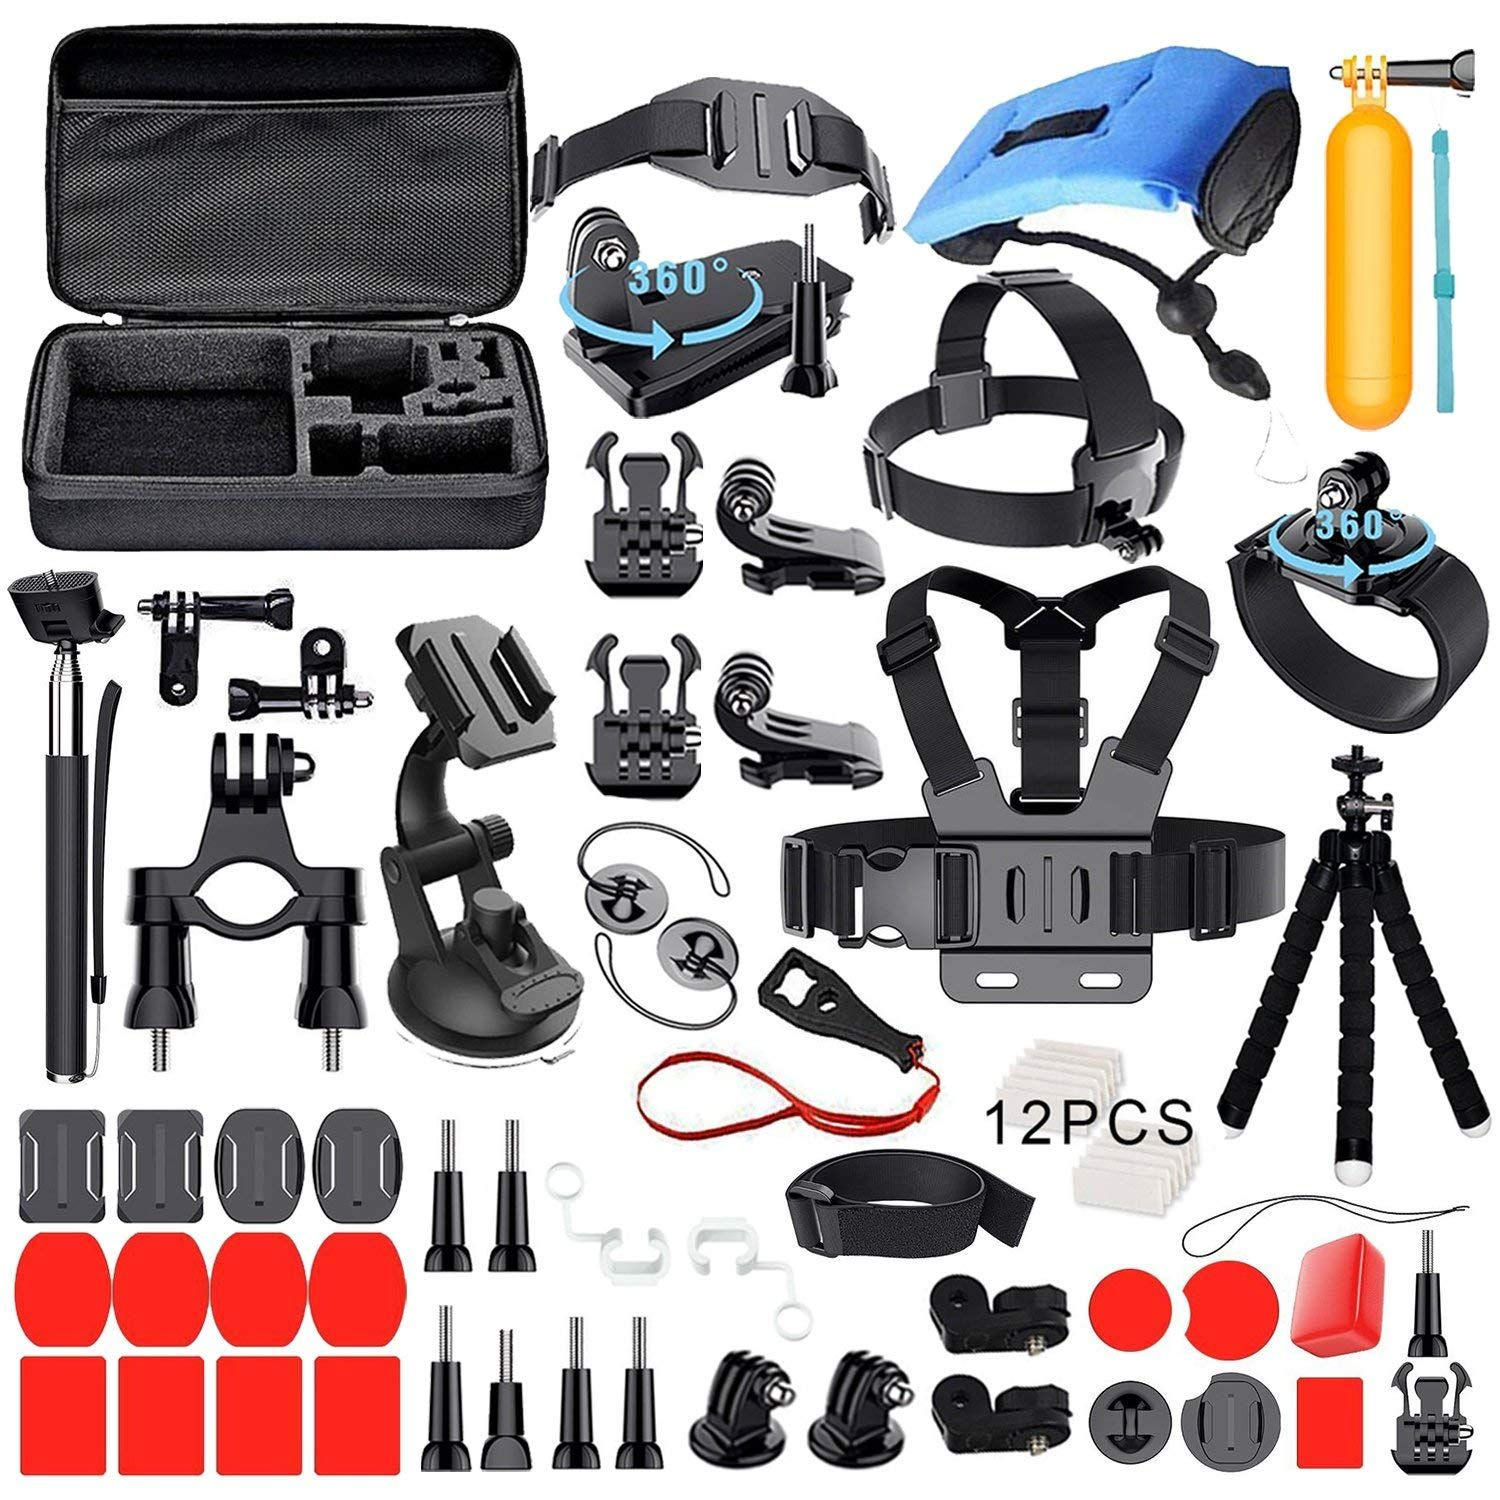 GoPro Accessories Kit Set with Carrying Case for Hero 2018/Fusion /Hero 6/5 Session/Hero 4& Xiaomi SJ4000 SJ5000 Action Camera